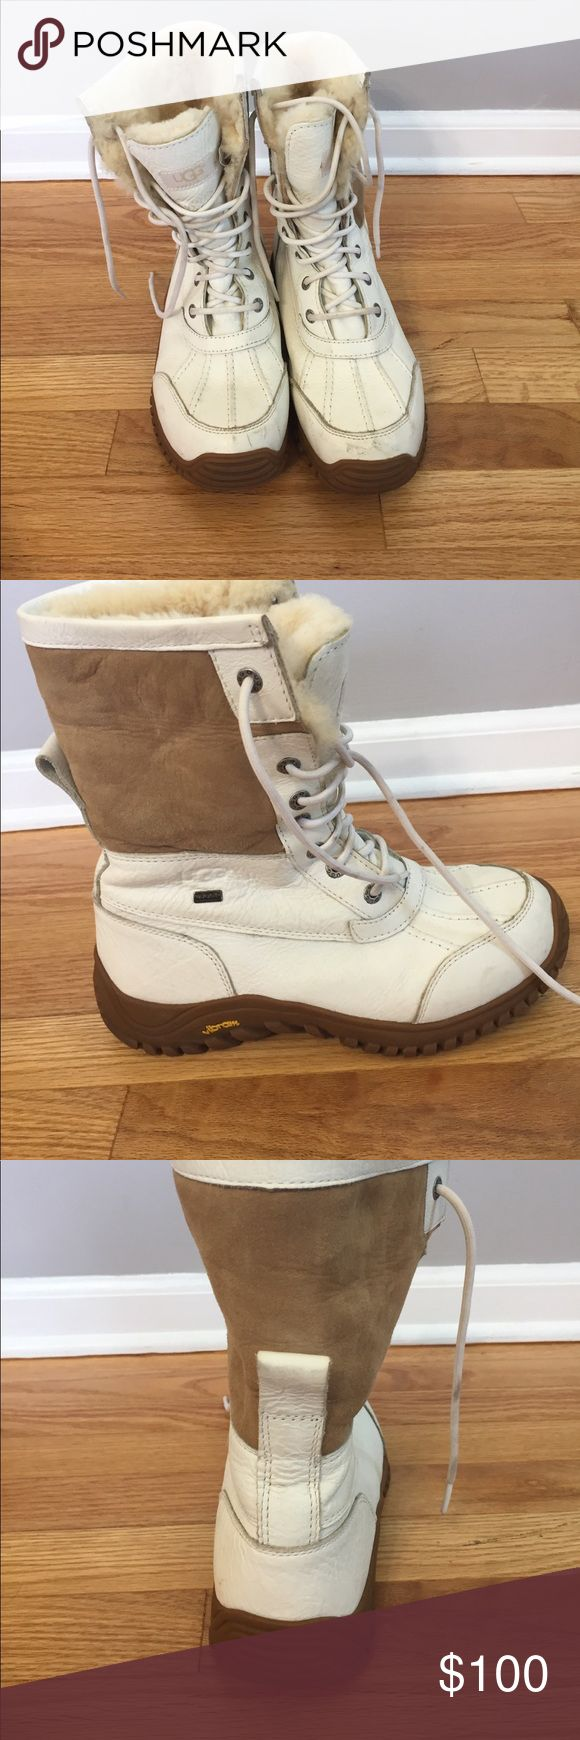 Ugg white snow boots Good condition UGG Shoes Winter & Rain Boots